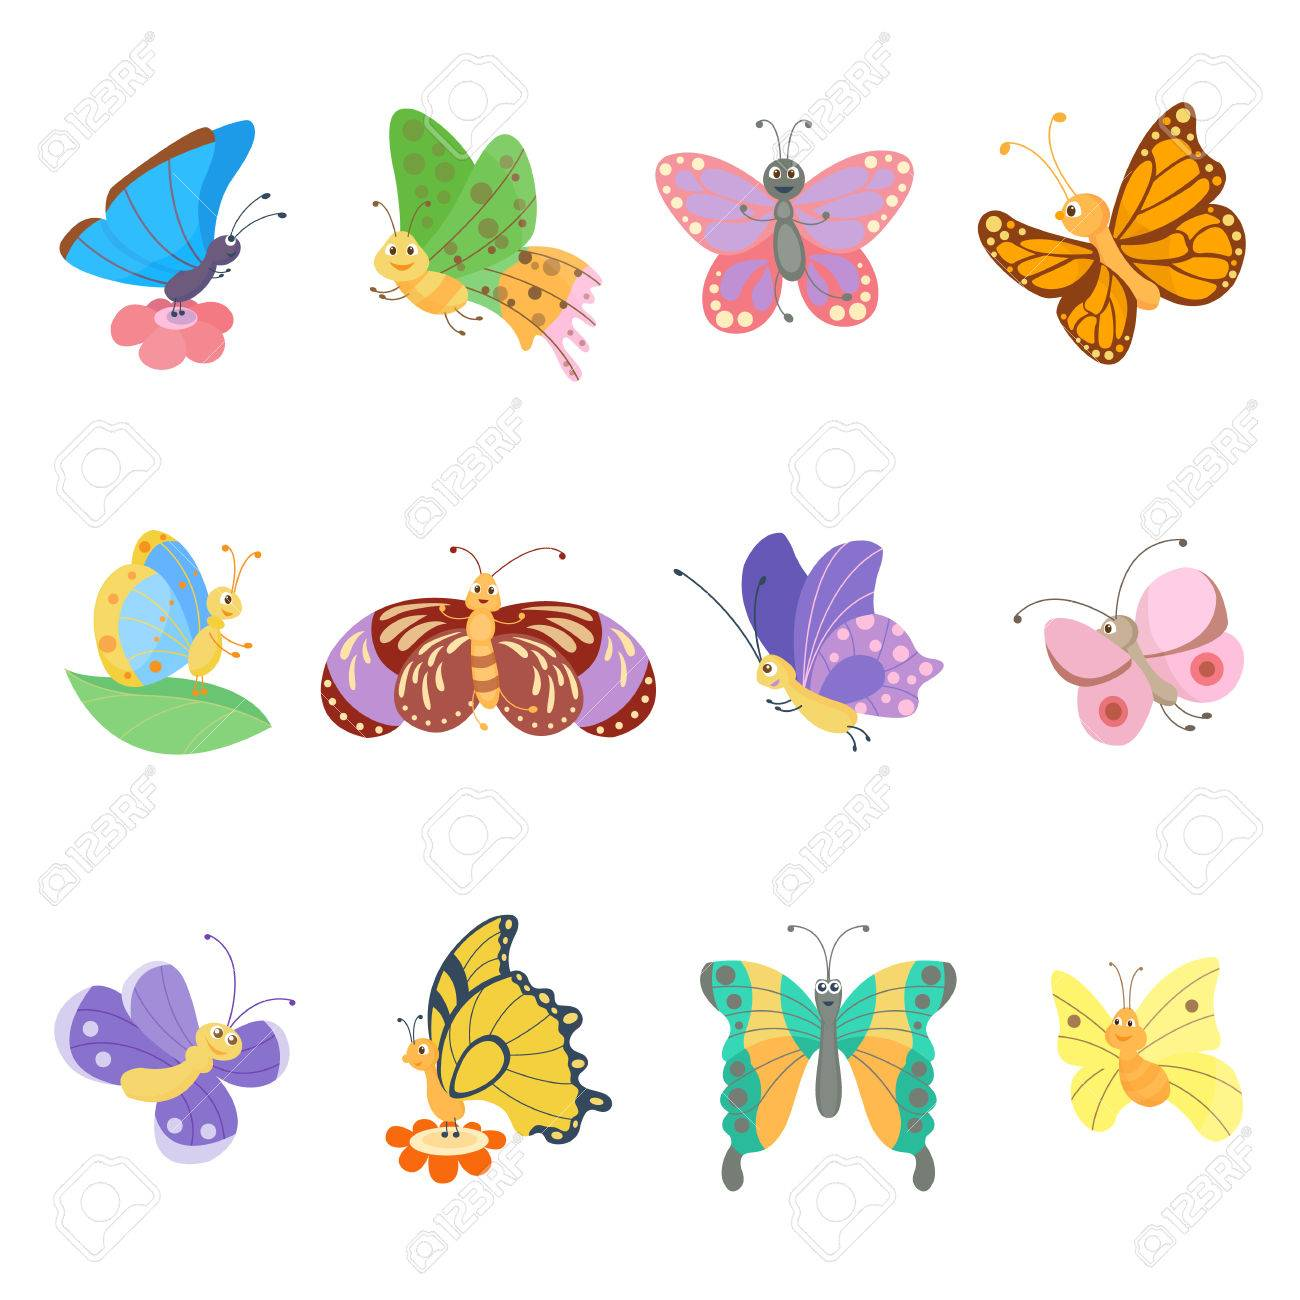 Colorful Butterflies Flat Style Vector Insects Vector Butterfly